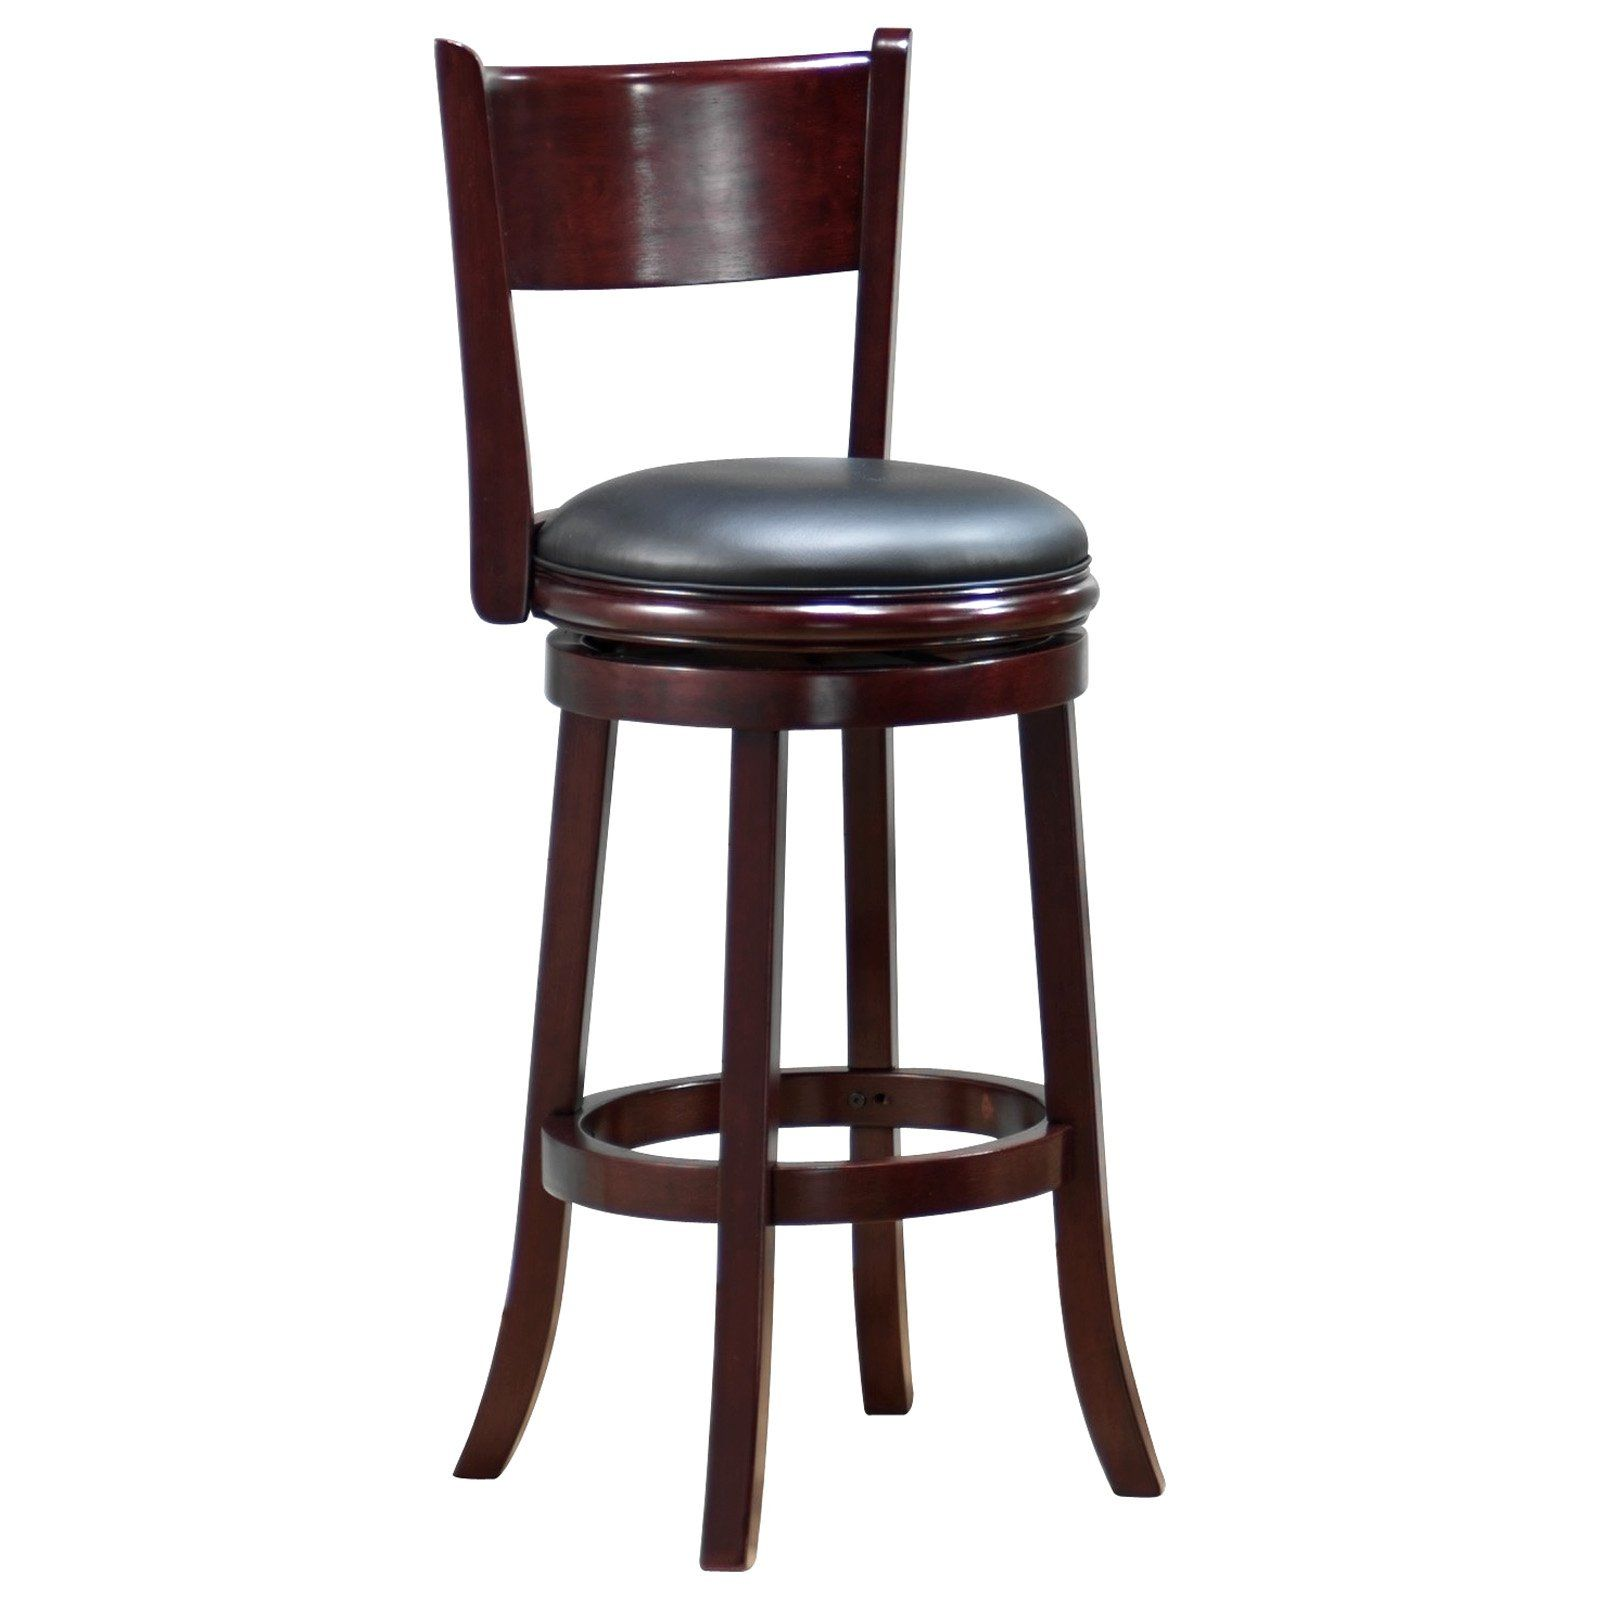 Brilliant Boraam Palmetto 29 In Swivel Bar Stool Brandy In 2019 Caraccident5 Cool Chair Designs And Ideas Caraccident5Info